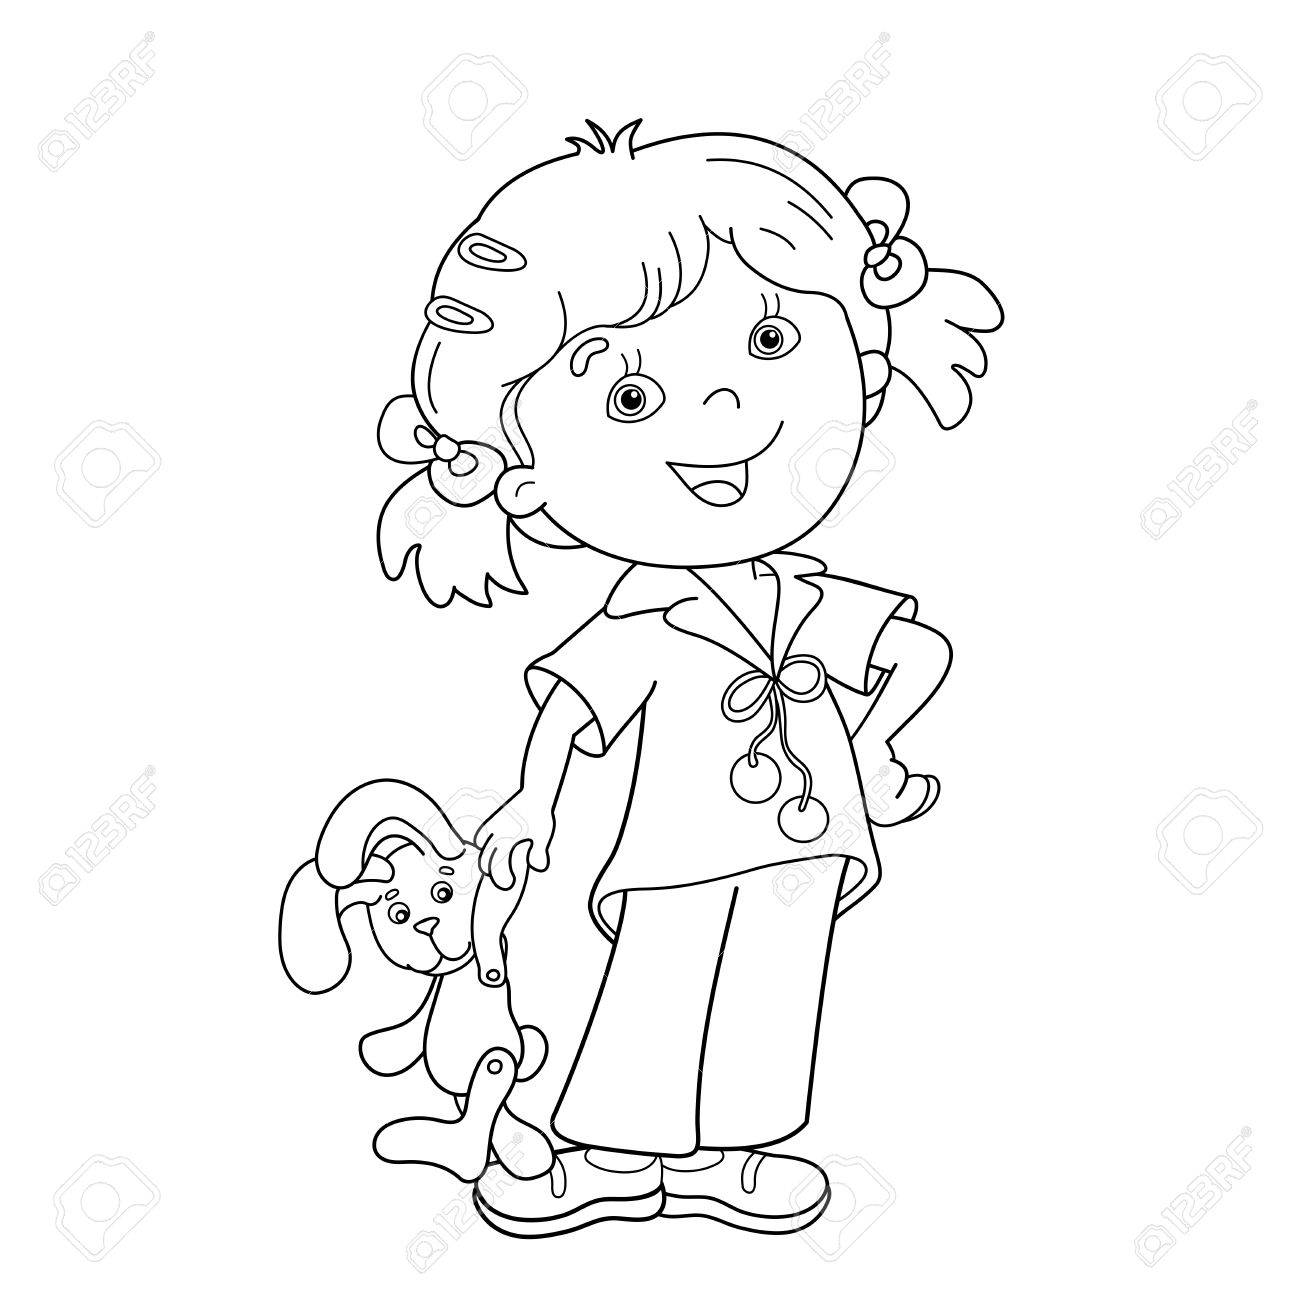 Coloring Page Outline Of Cartoon Girl With Toy Hare Coloring